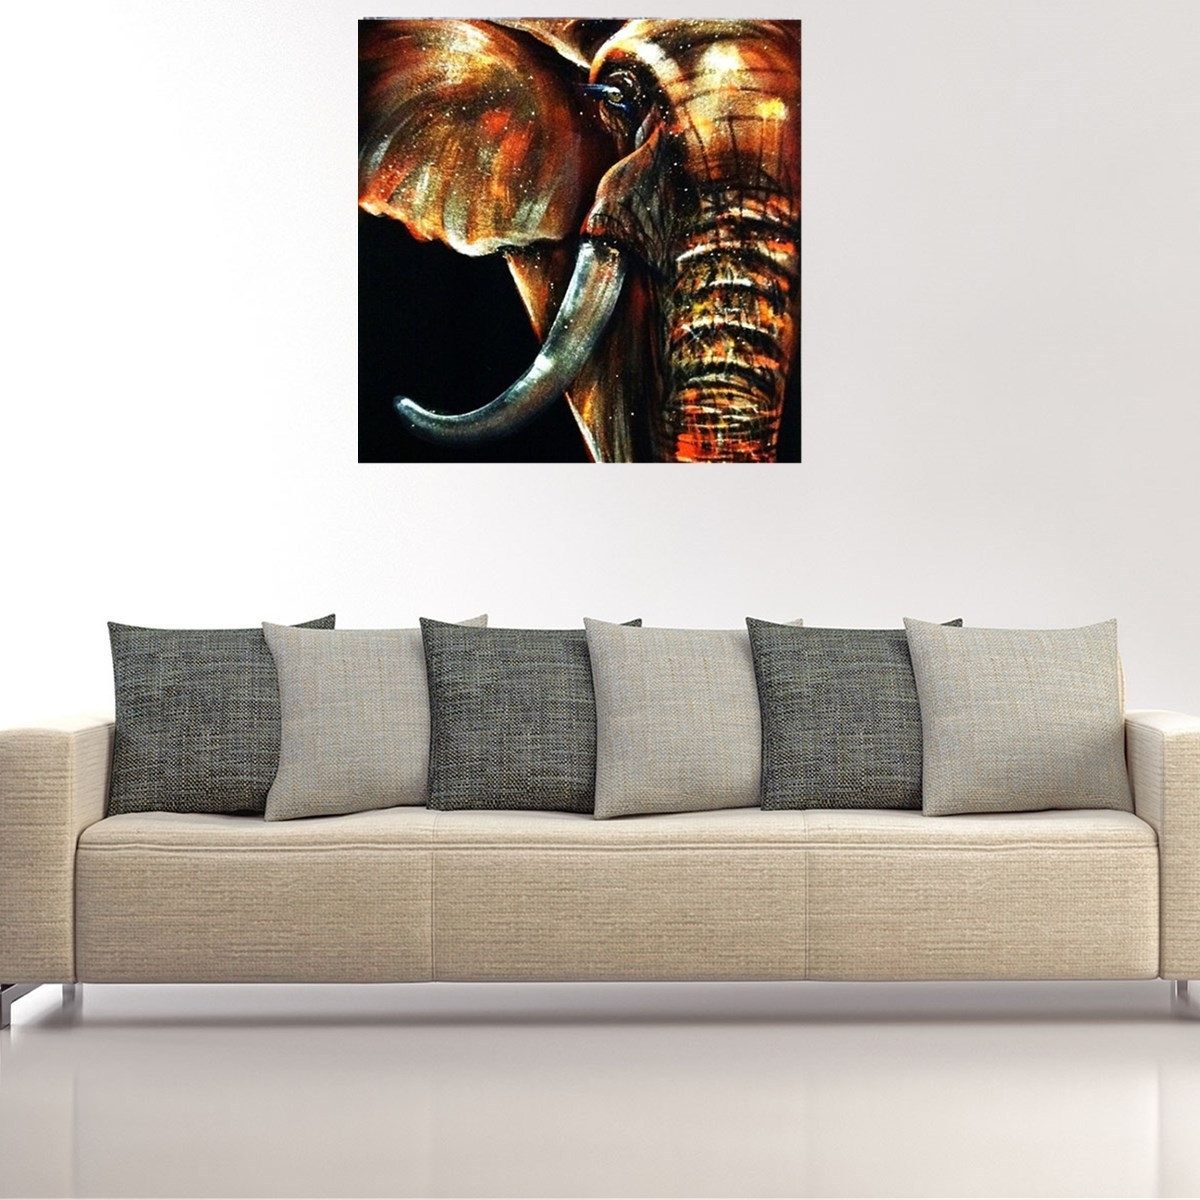 50x50cm Modern Abstract Huge Elephant Wall Art Decor Oil Painting On Within Recent Elephant Canvas Wall Art (View 18 of 20)